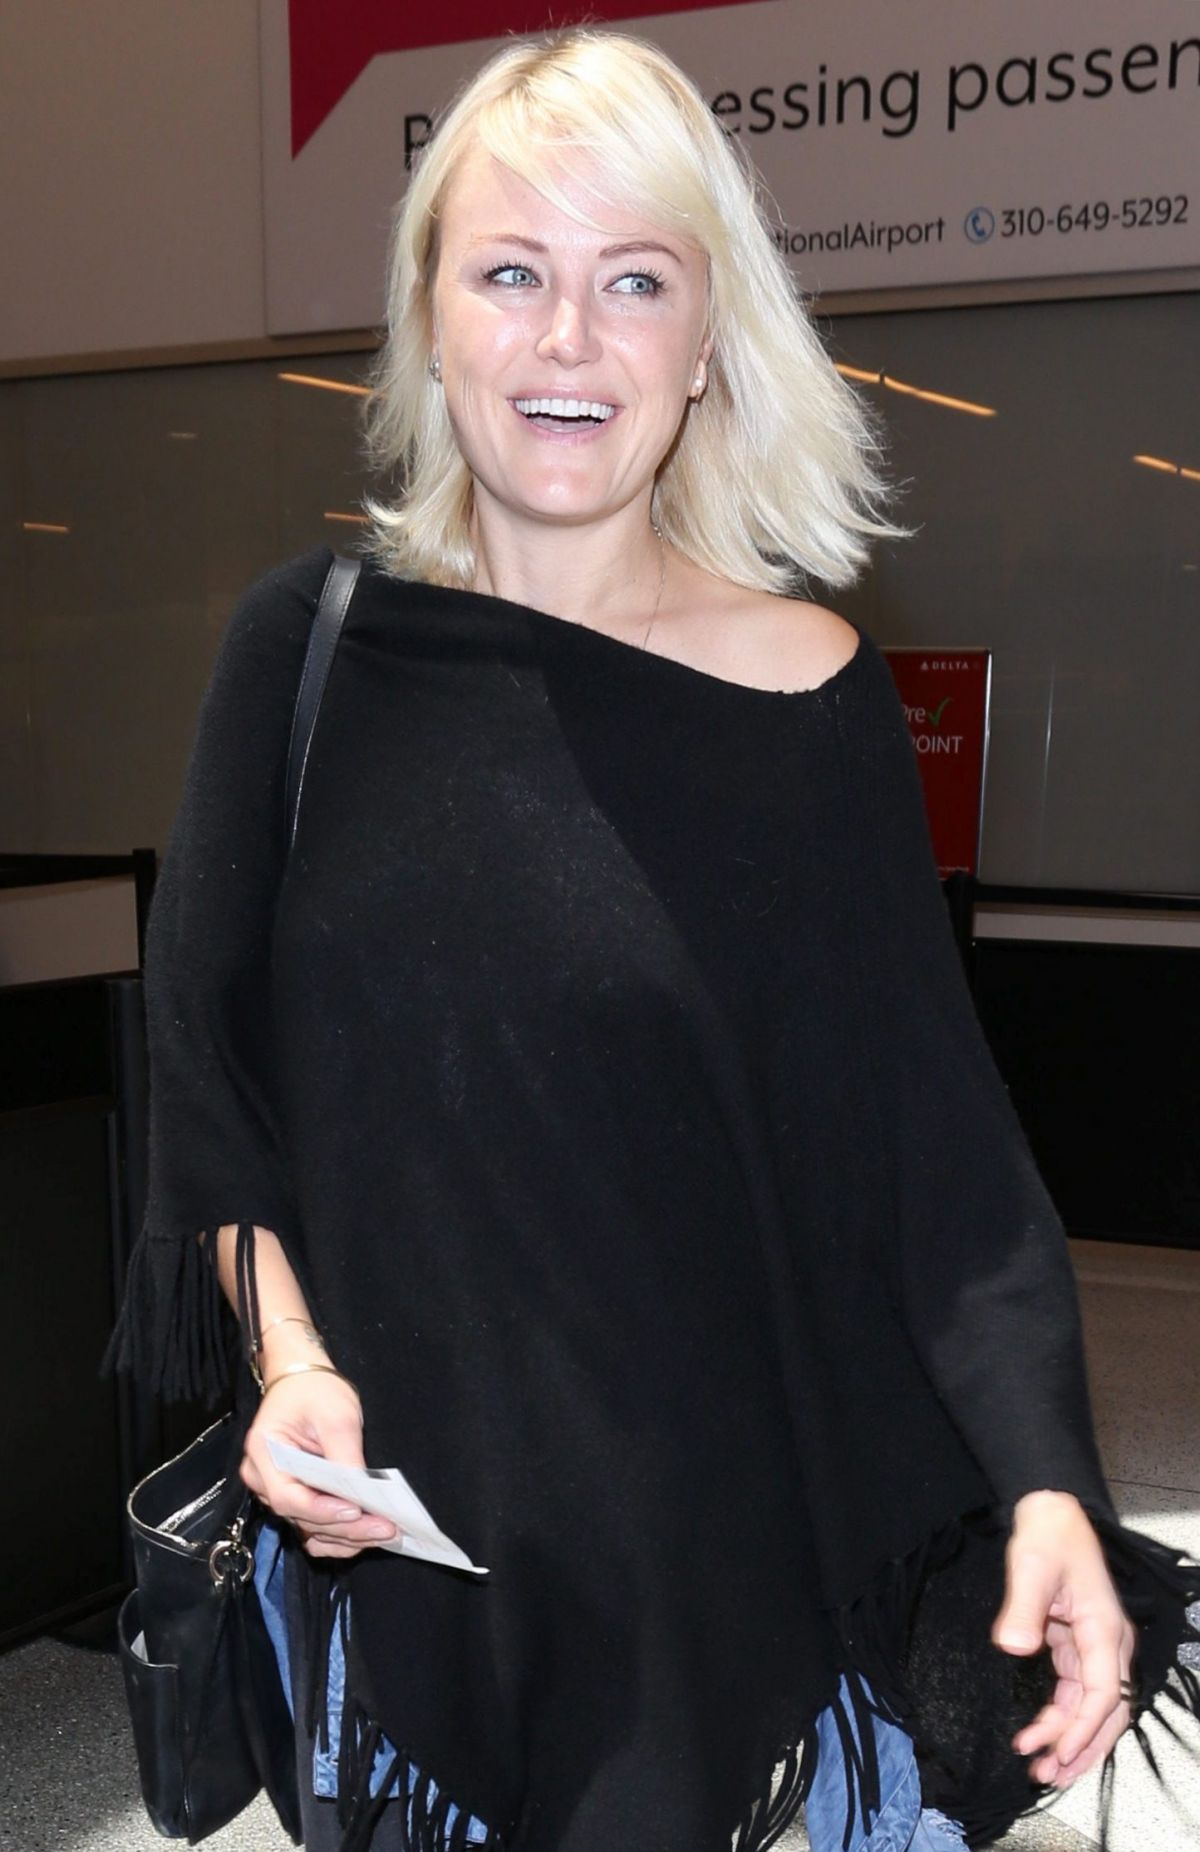 MALIN AKERMAN Arrives at LAX Airport in Los Angeles 05/08 ...